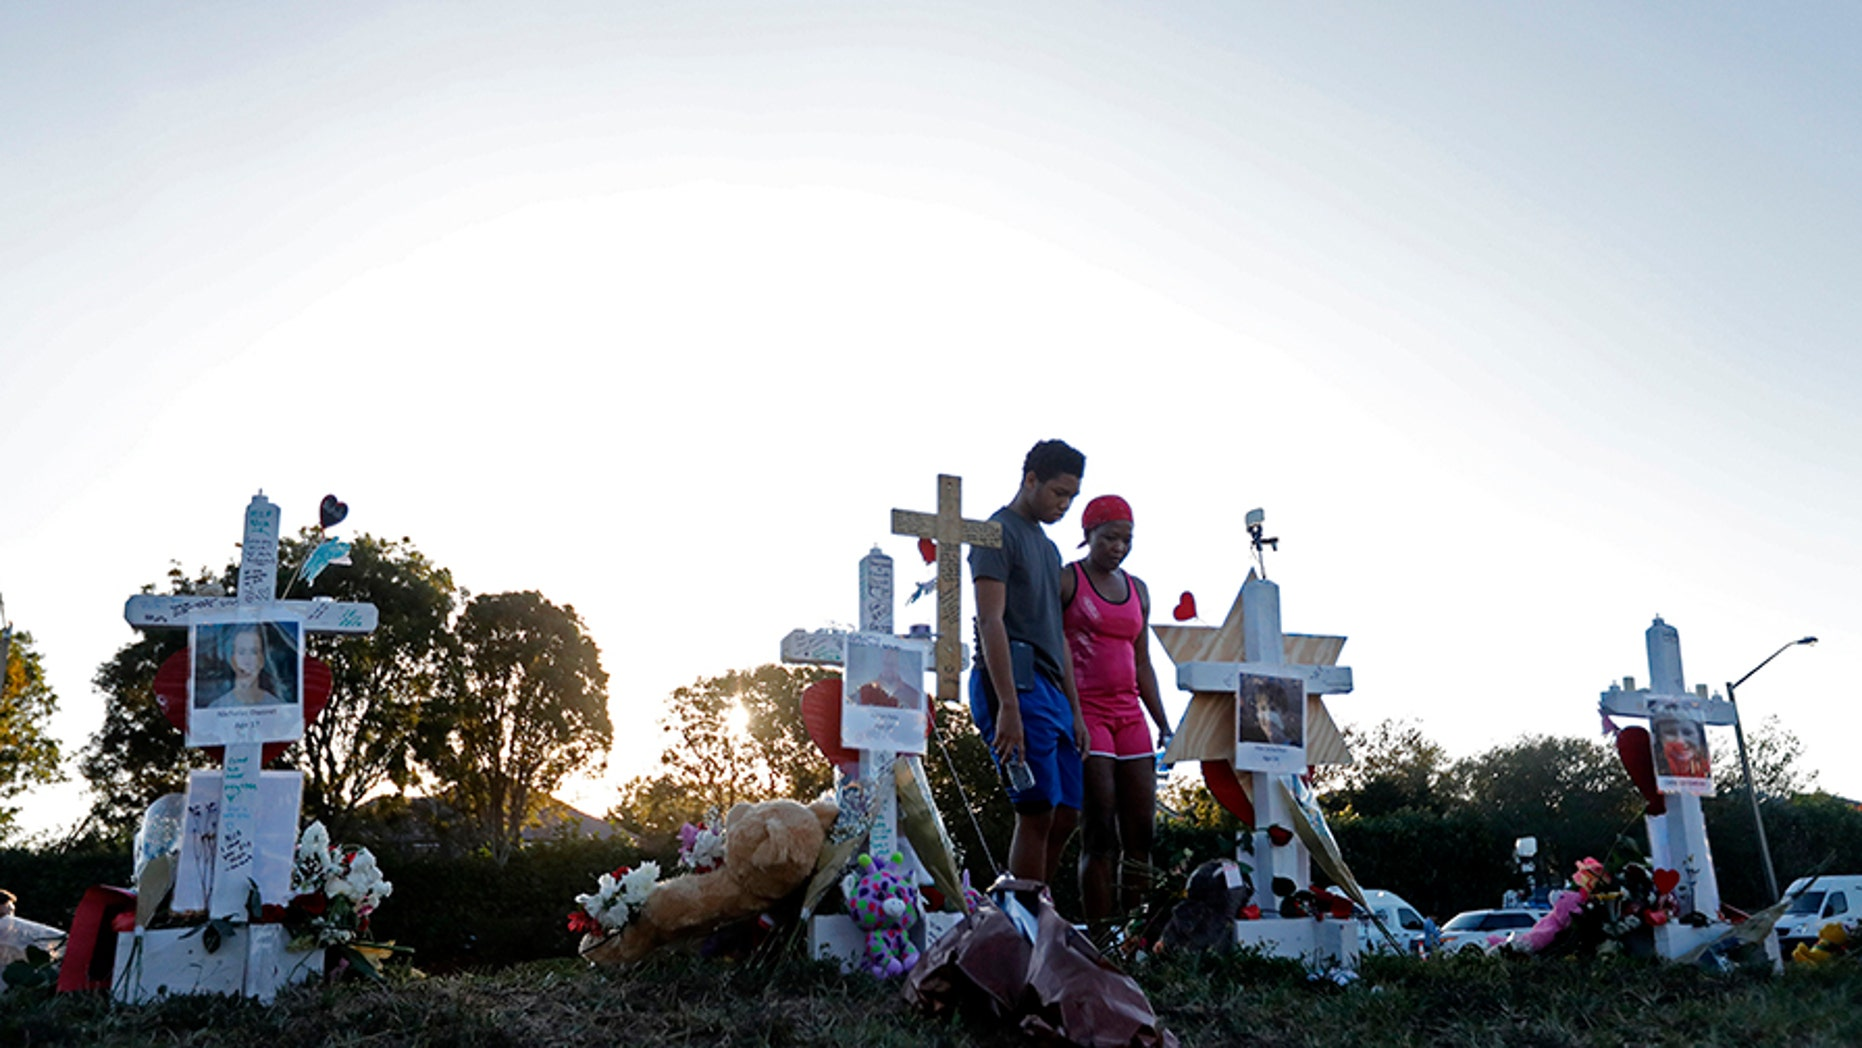 People visiting a makeshift memorial outside Marjory Stoneman Douglas High School, where 17 people were killed on Feb. 14.